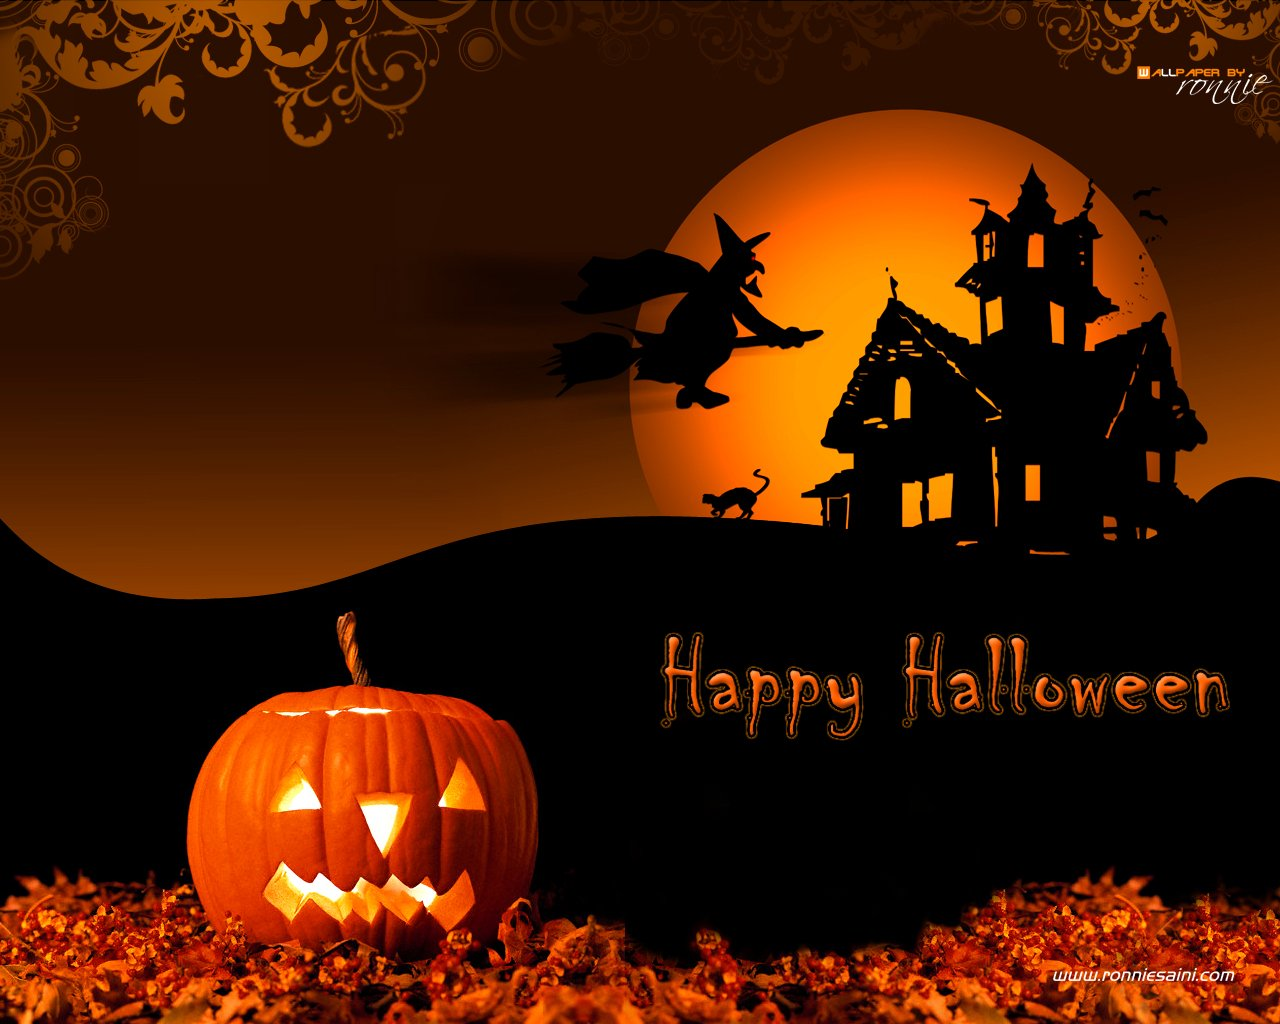 Download Wallpapers Happy Halloween 1280x1024